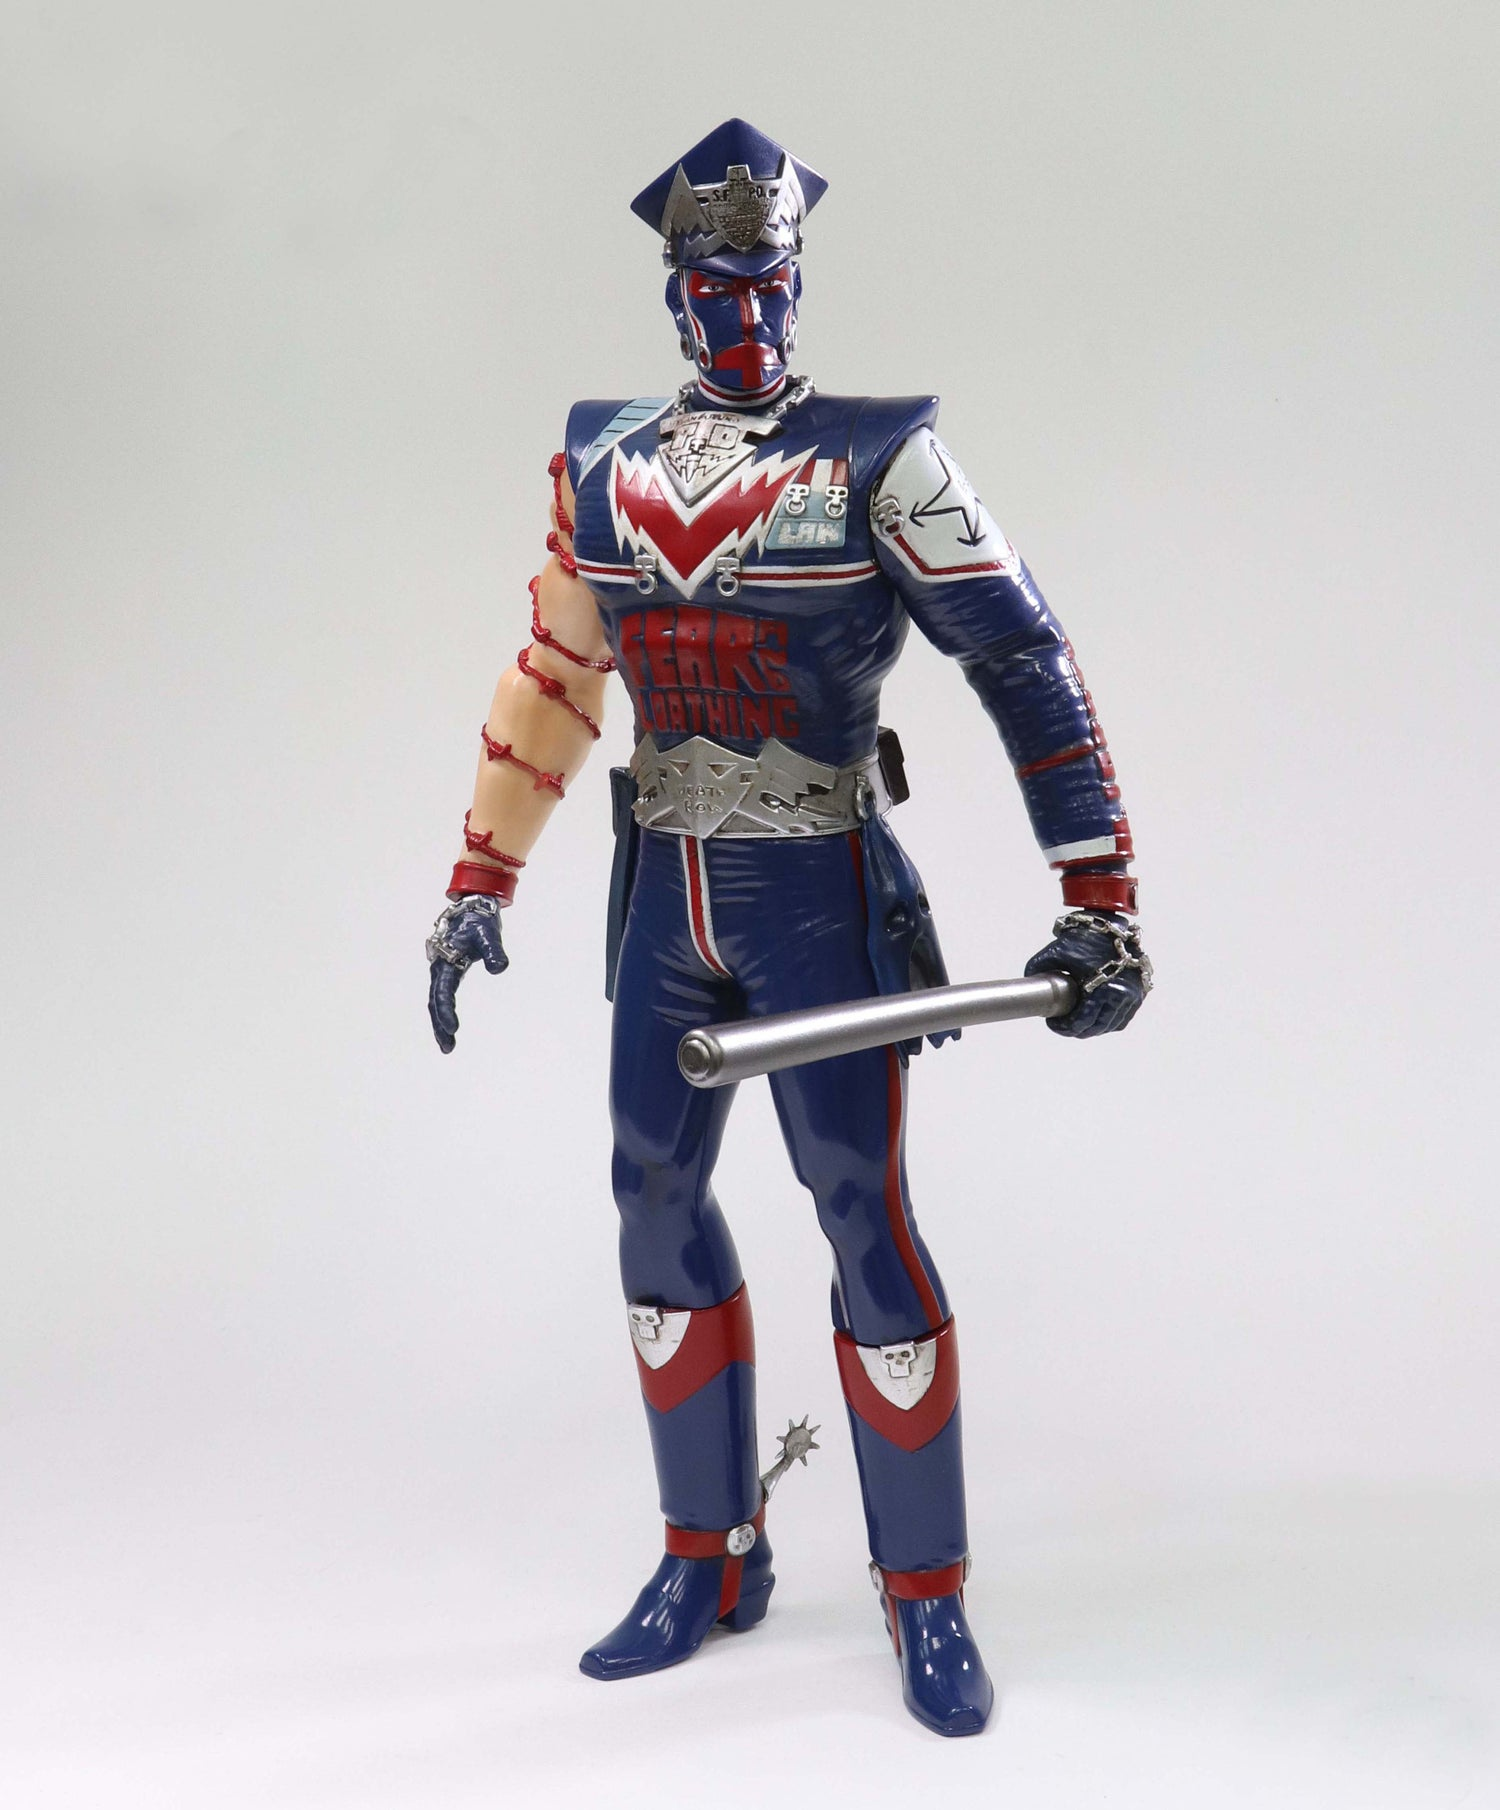 Image of MARSHAL LAW VINYL LTD RUN FIGURE